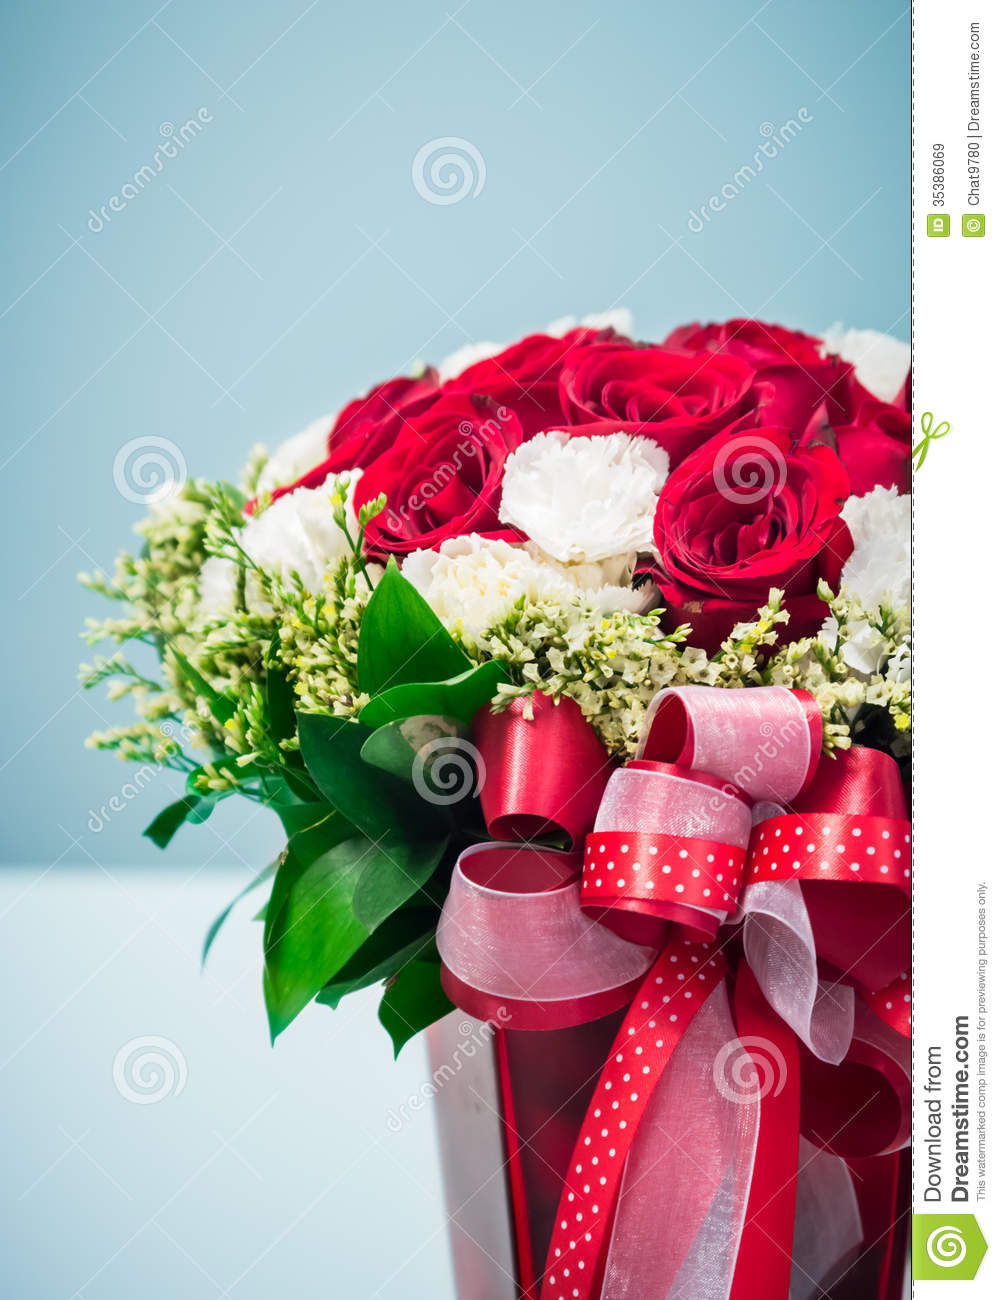 Flower gift stock image image of sweet gift bloom 35386069 flower gift negle Image collections